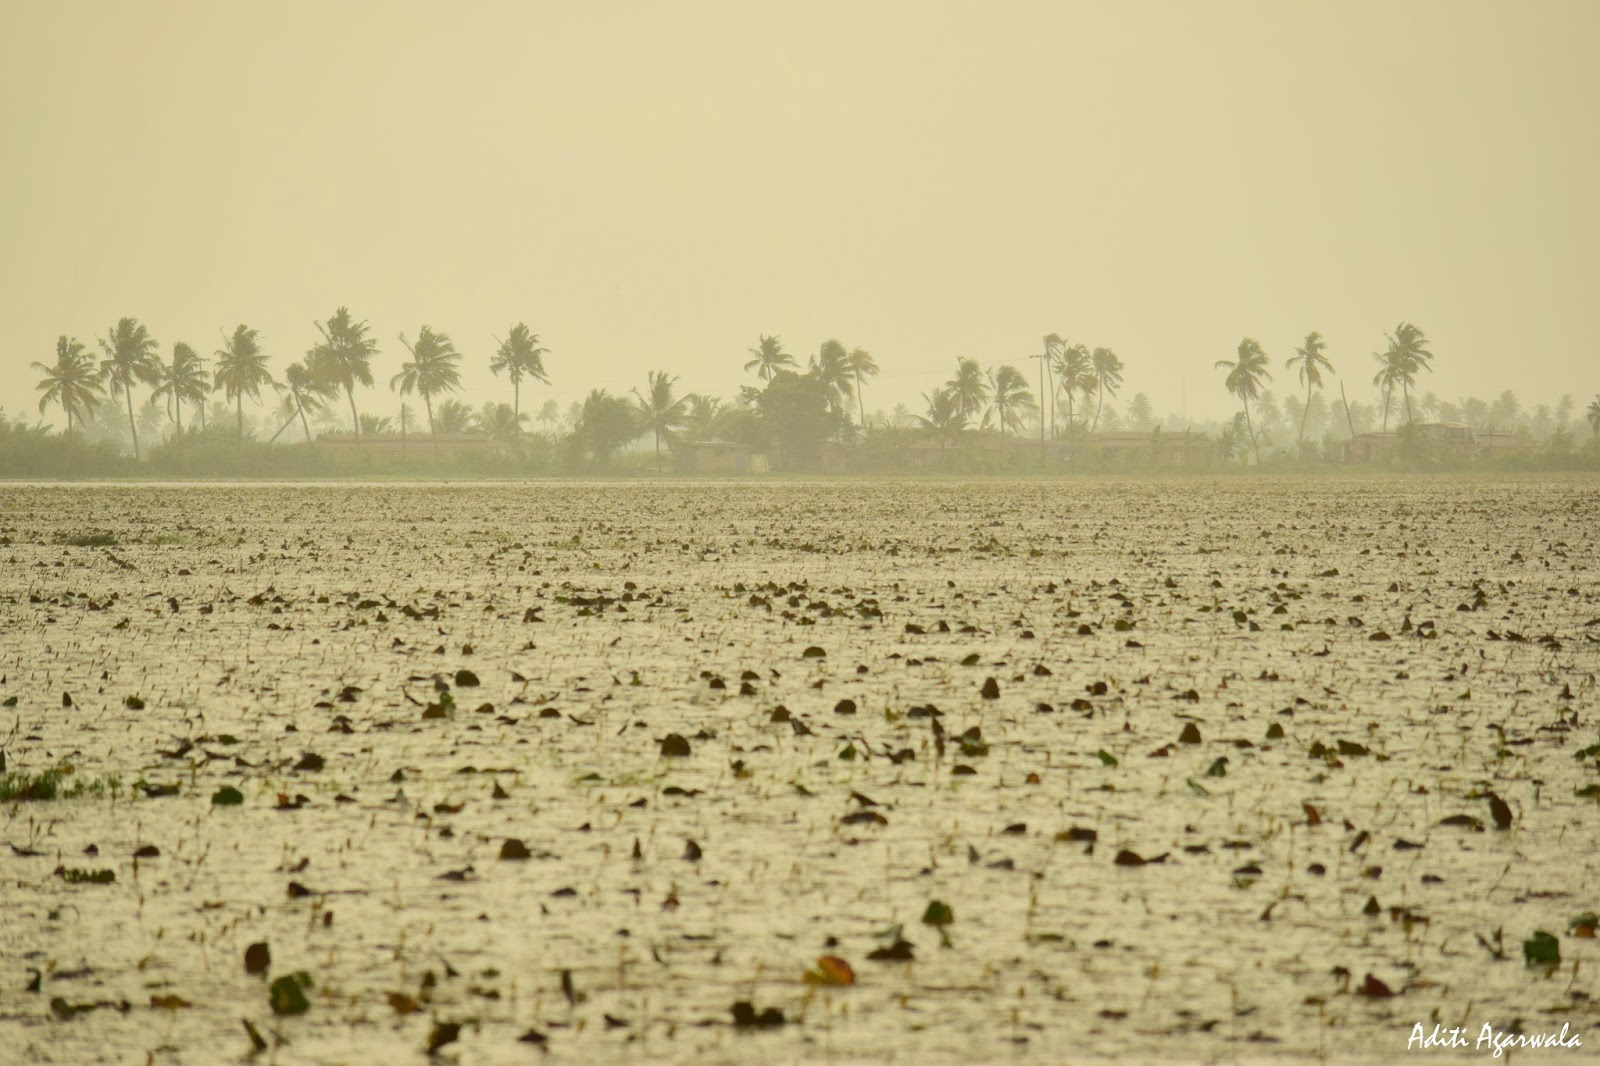 Heavy rains in the season of monsoon adds another charm to the backwaters of Allepey